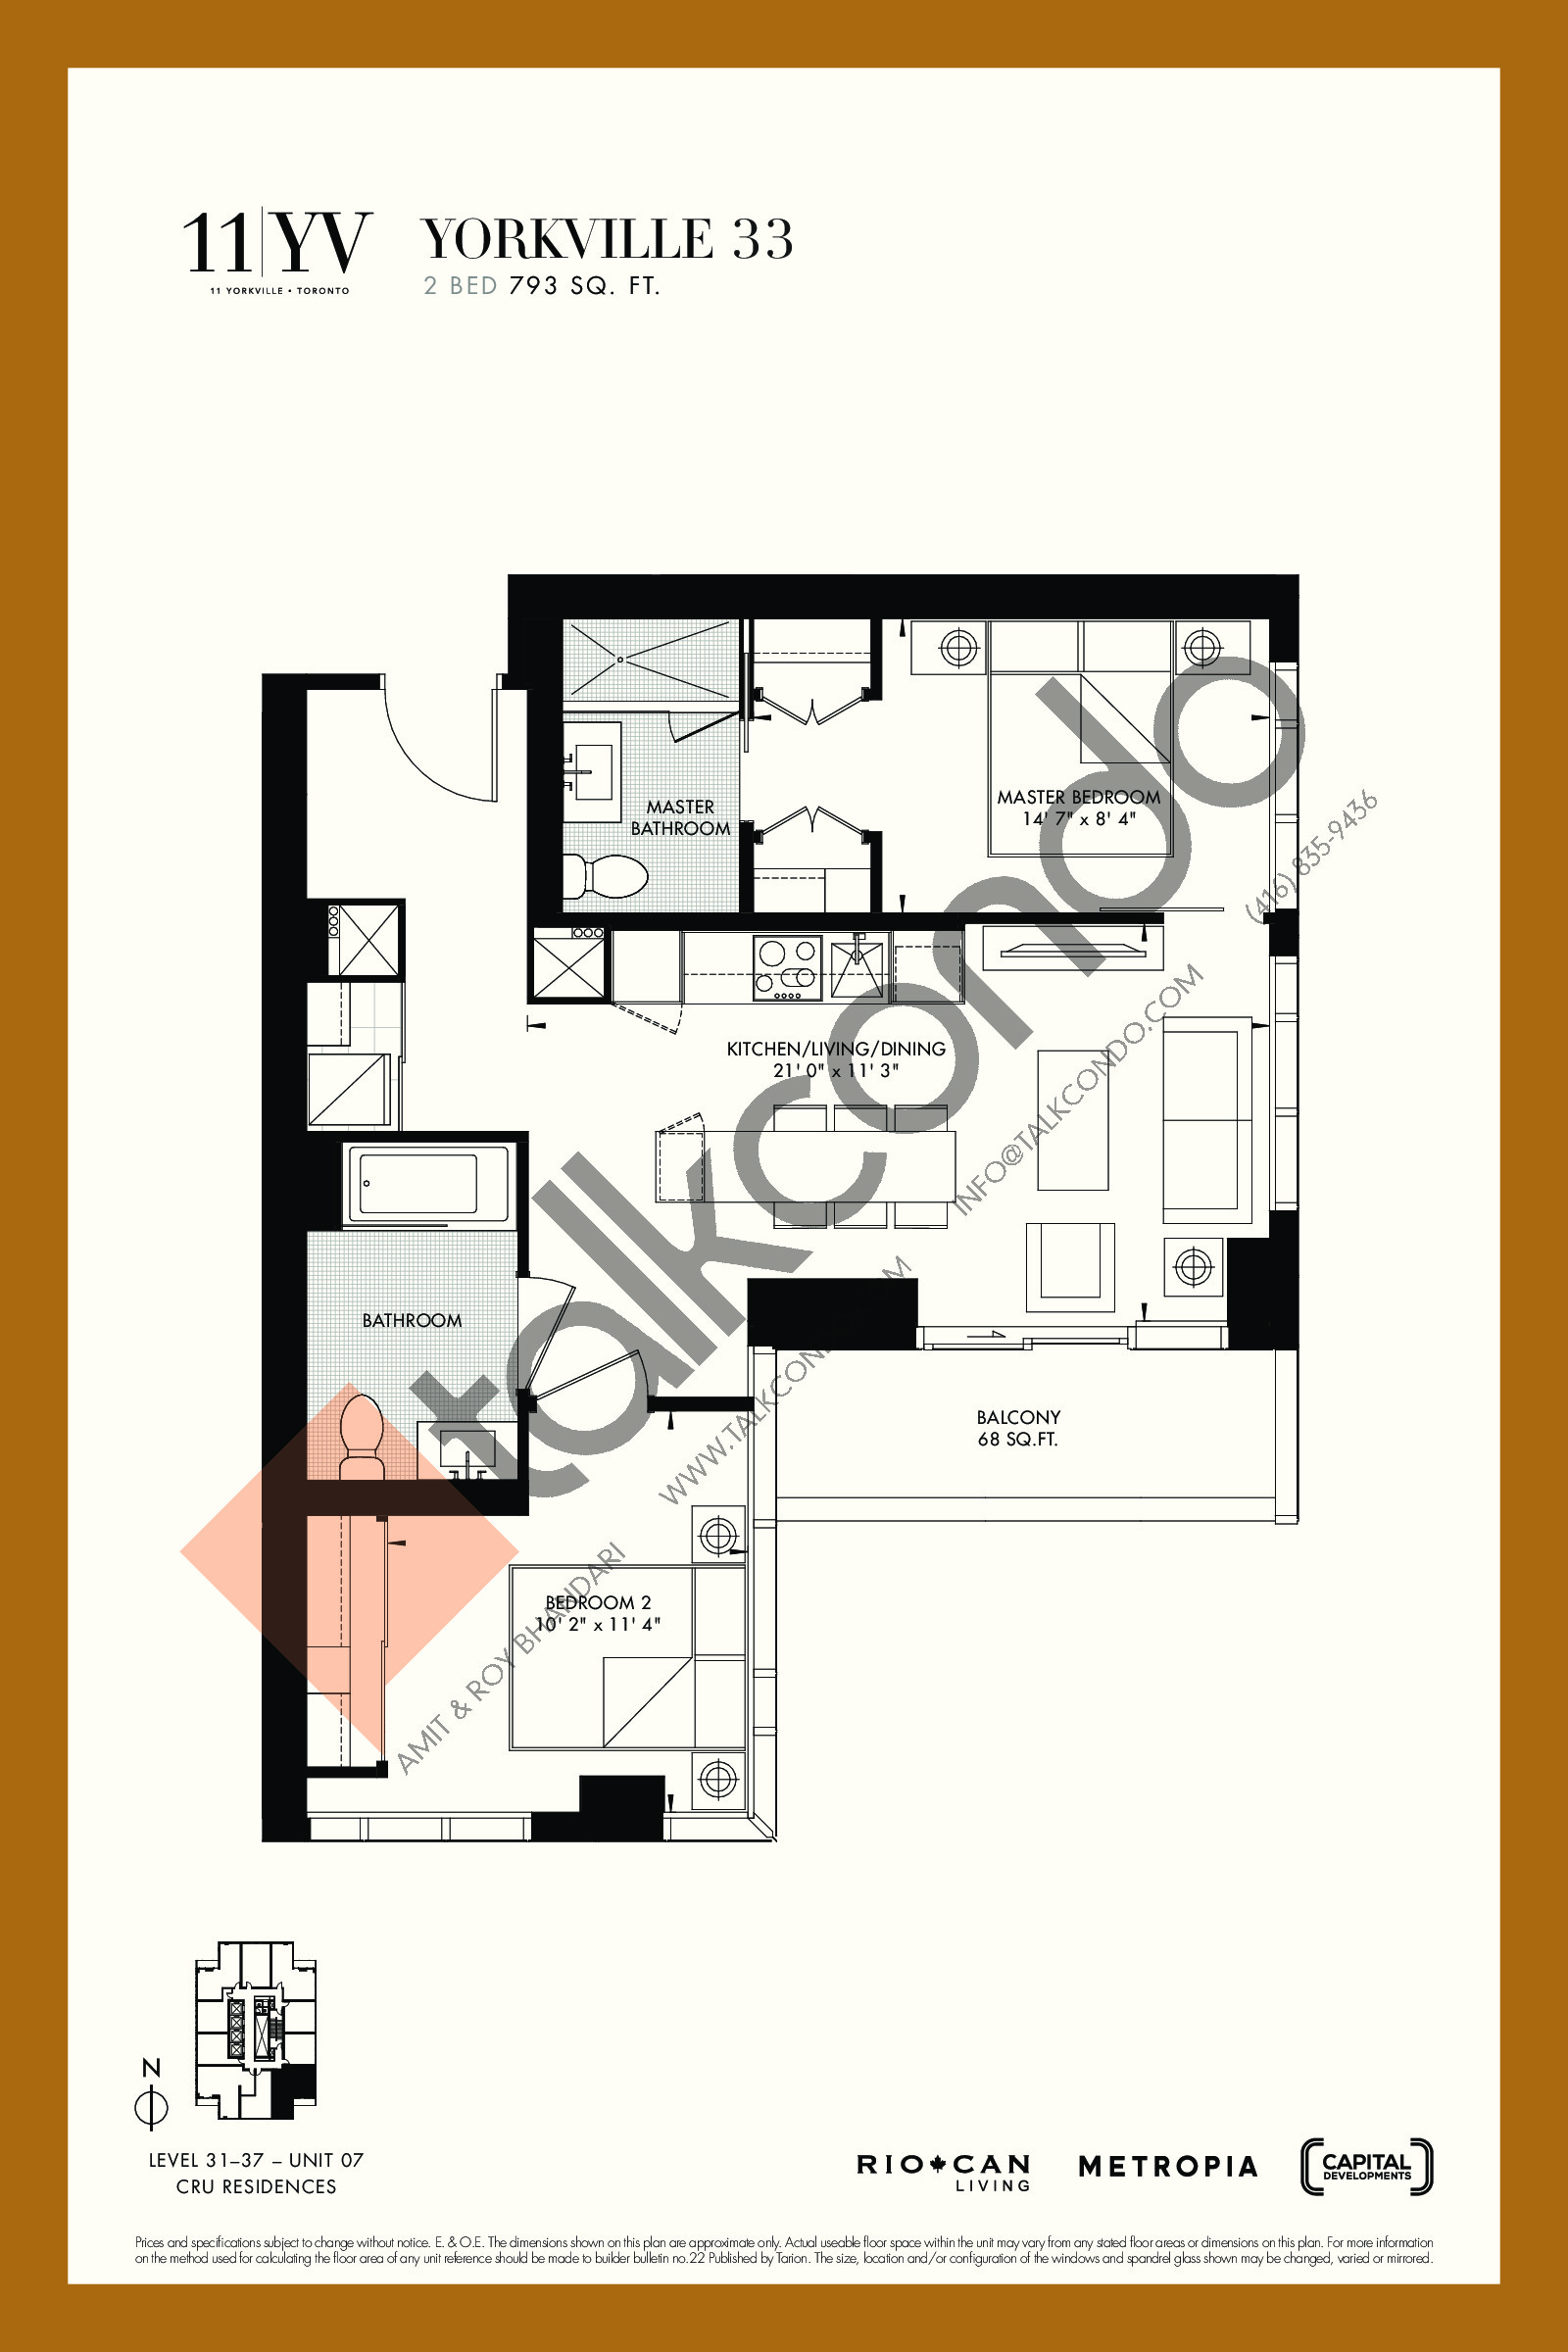 Yorkville 33 Floor Plan at 11YV Condos - 793 sq.ft